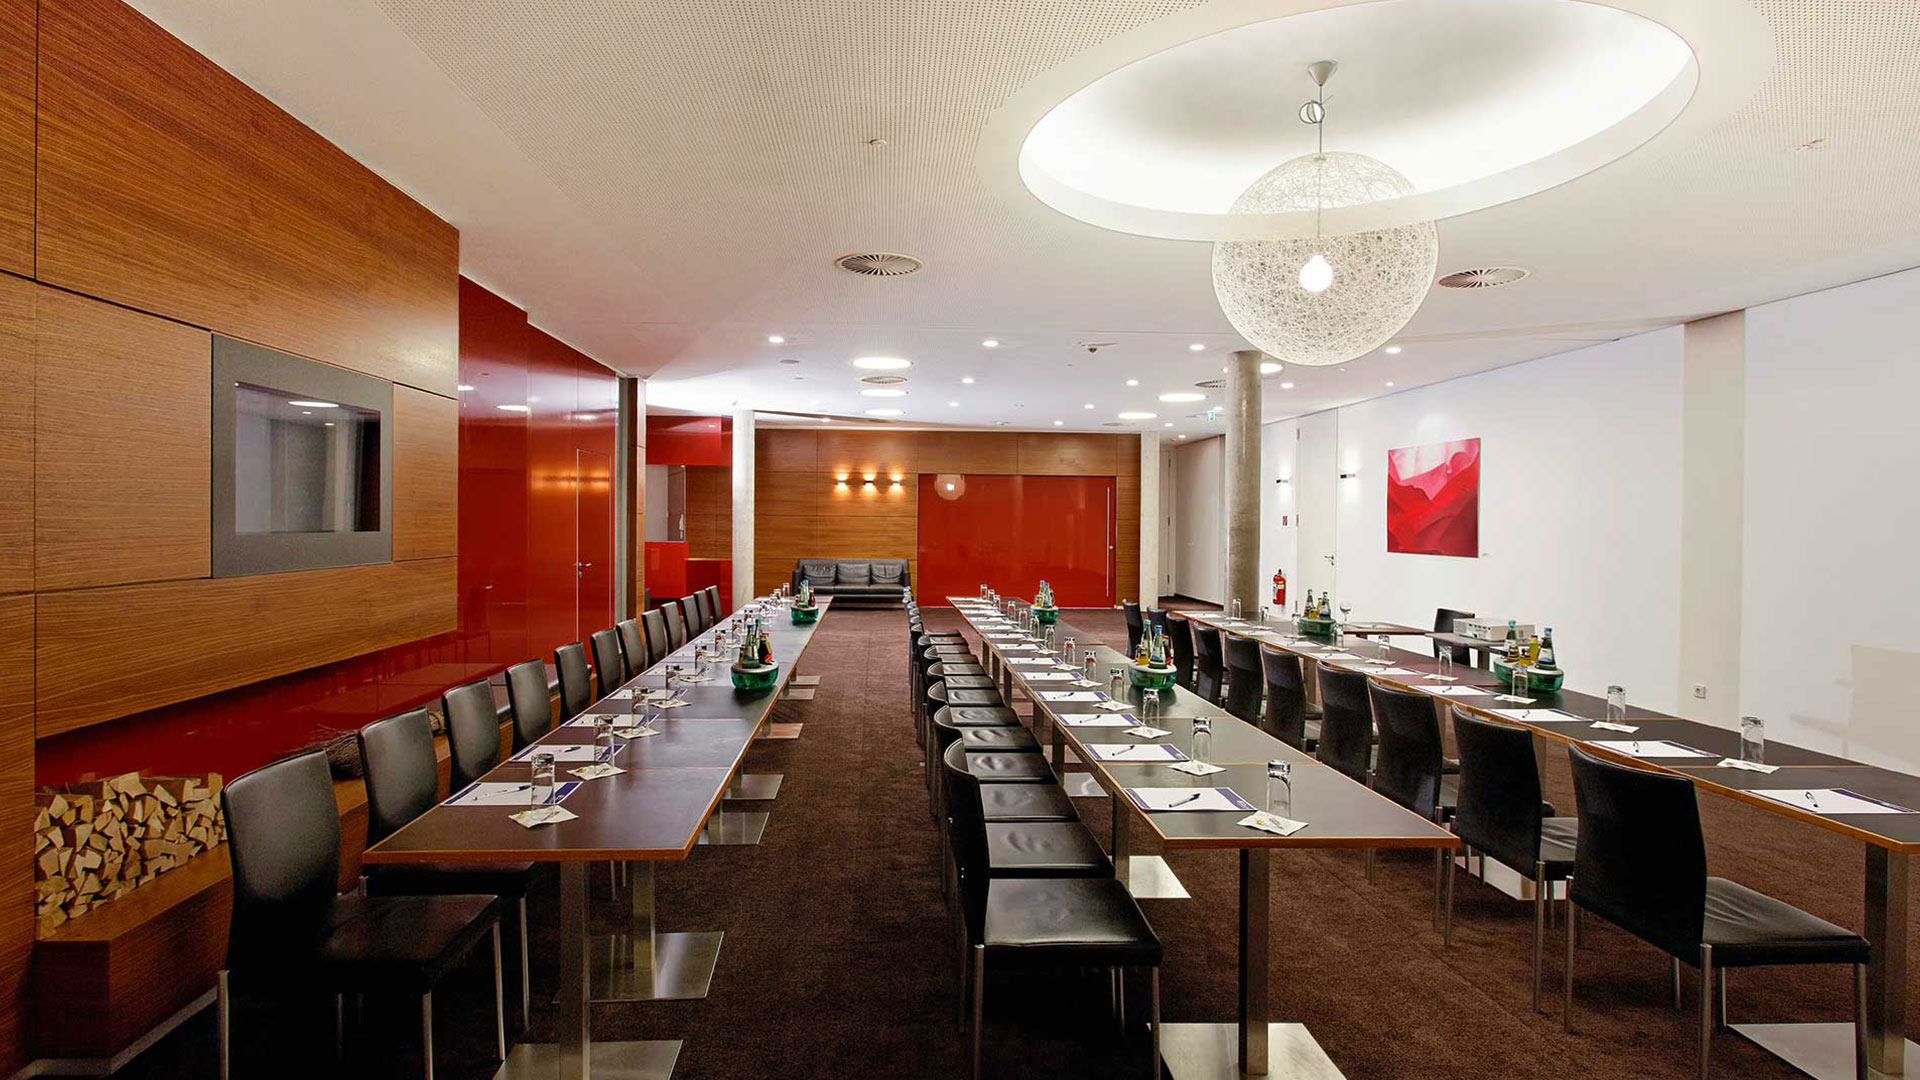 Photo of a conference room - 02 - Hilton Garden Inn Stuttgart NeckarPark